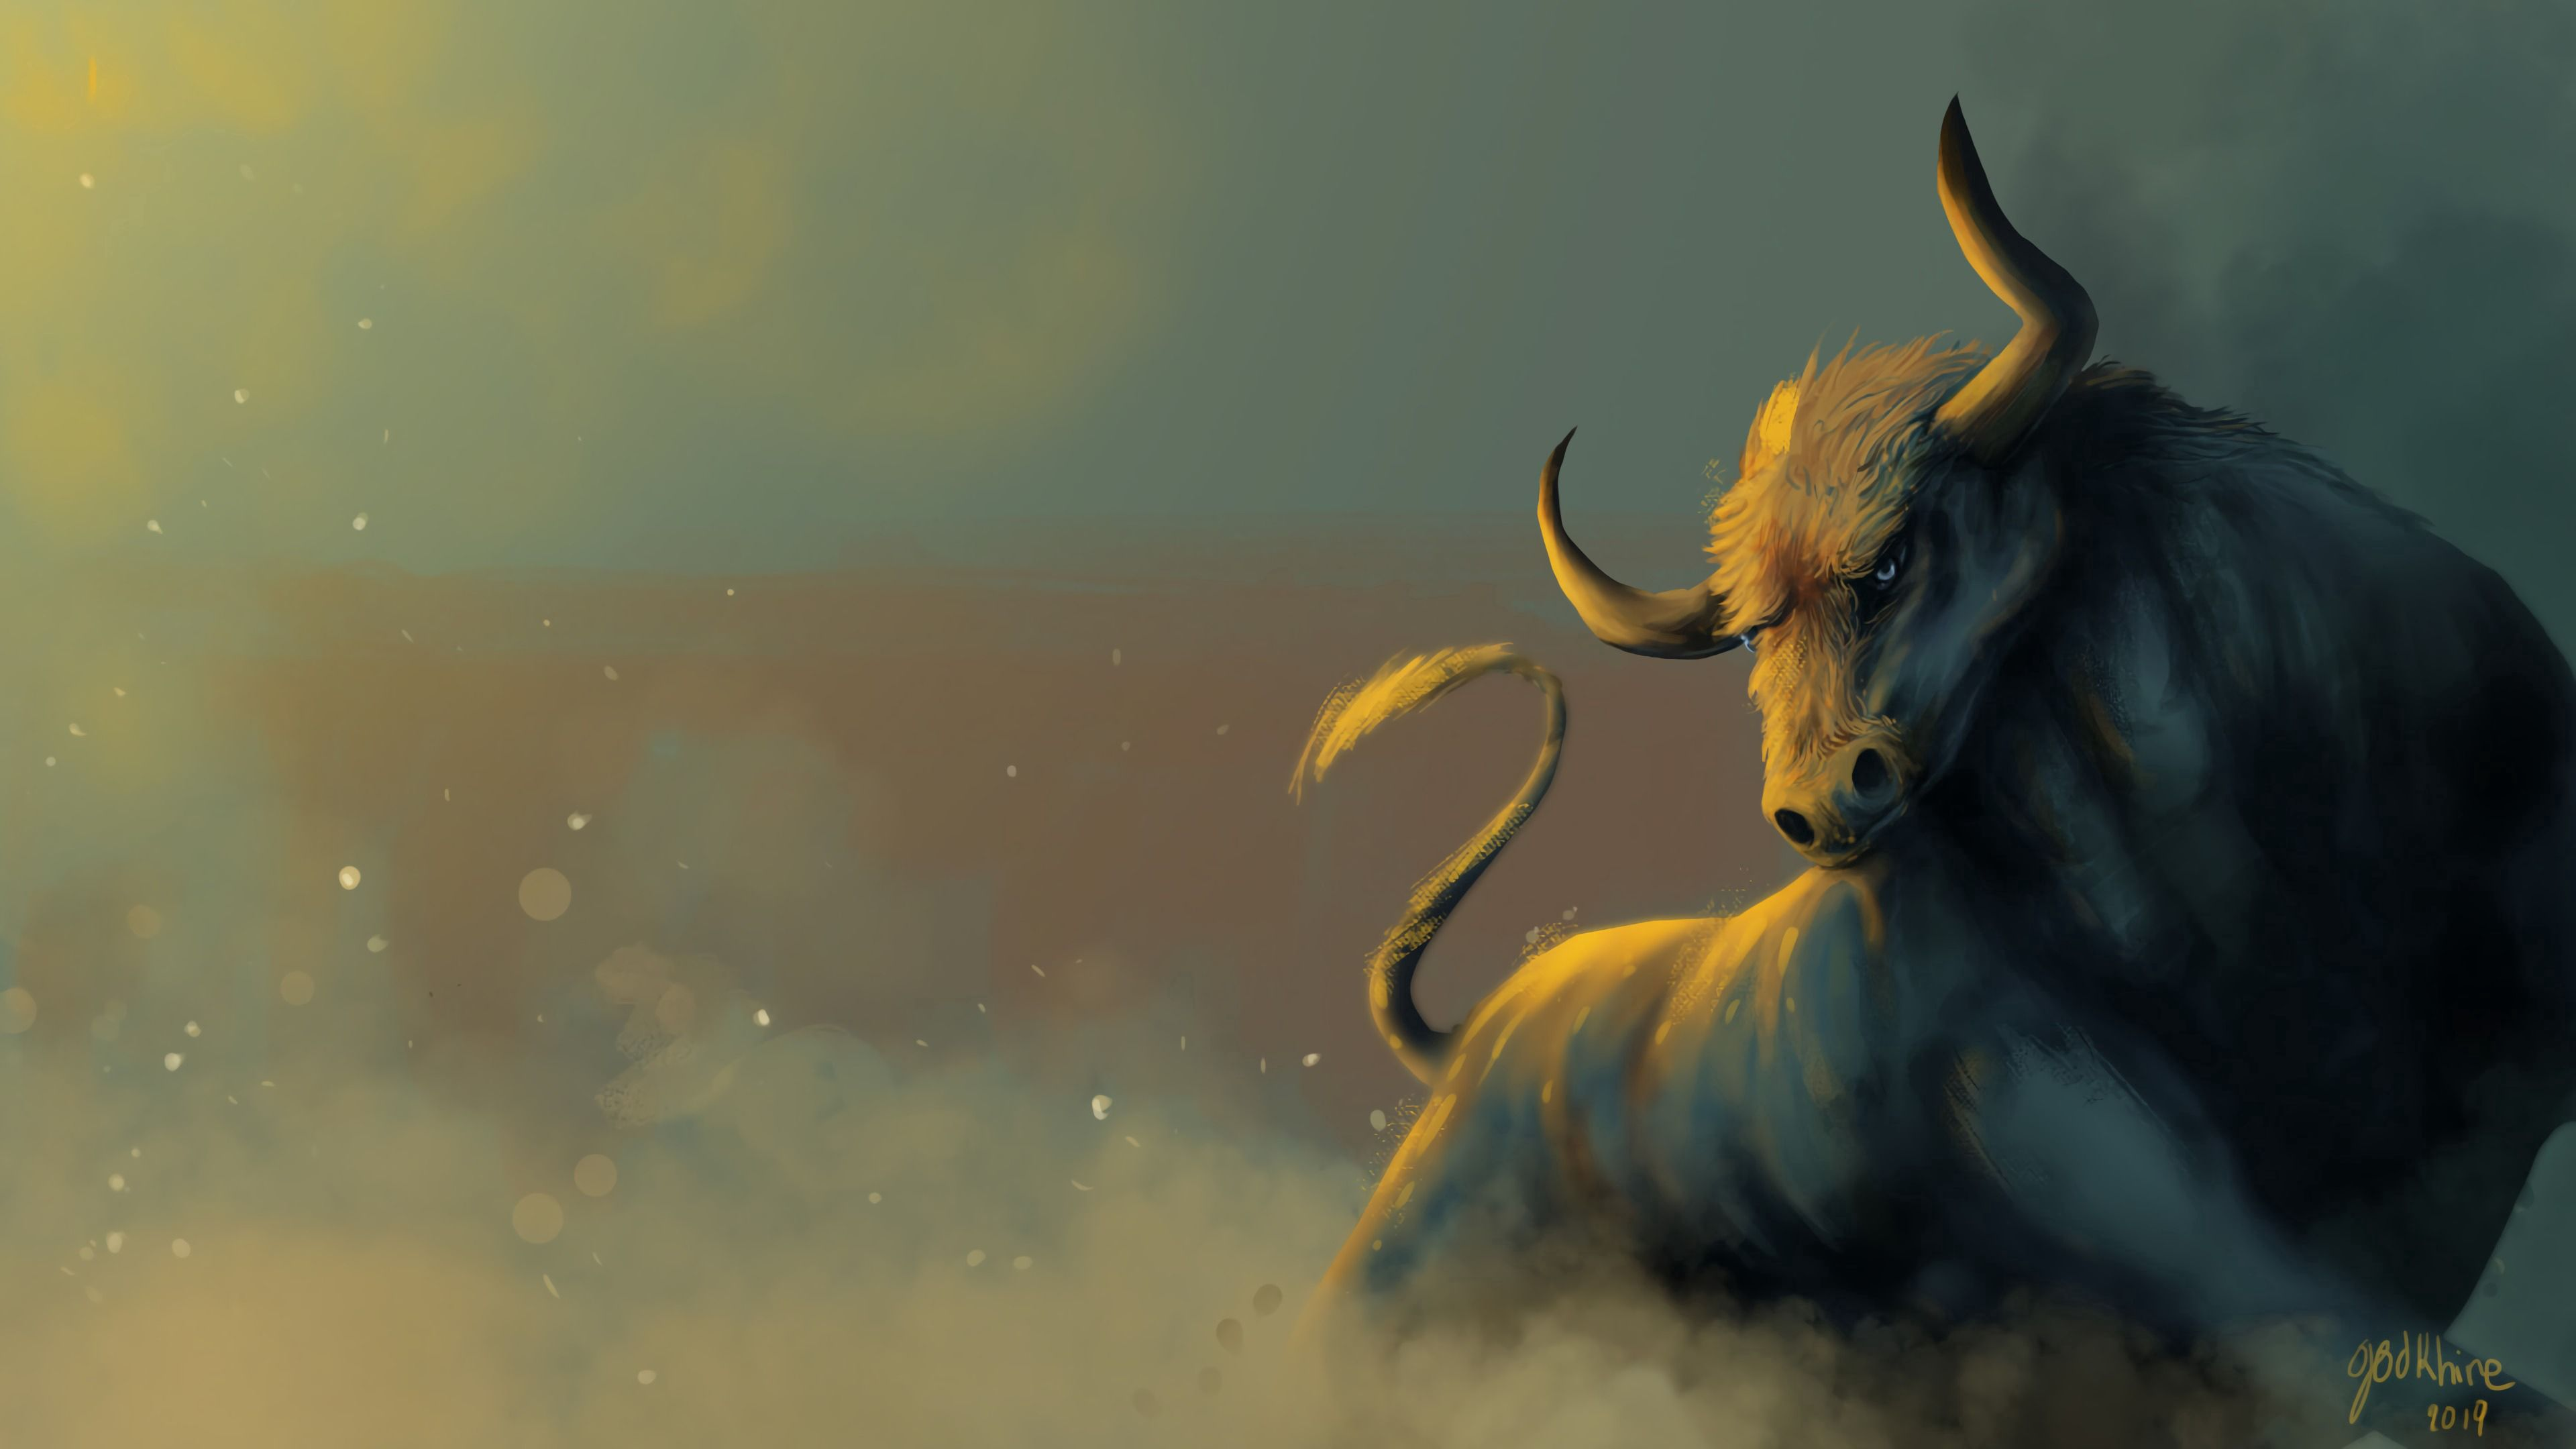 122900 download wallpaper Bull, Dust, Animal, Art screensavers and pictures for free